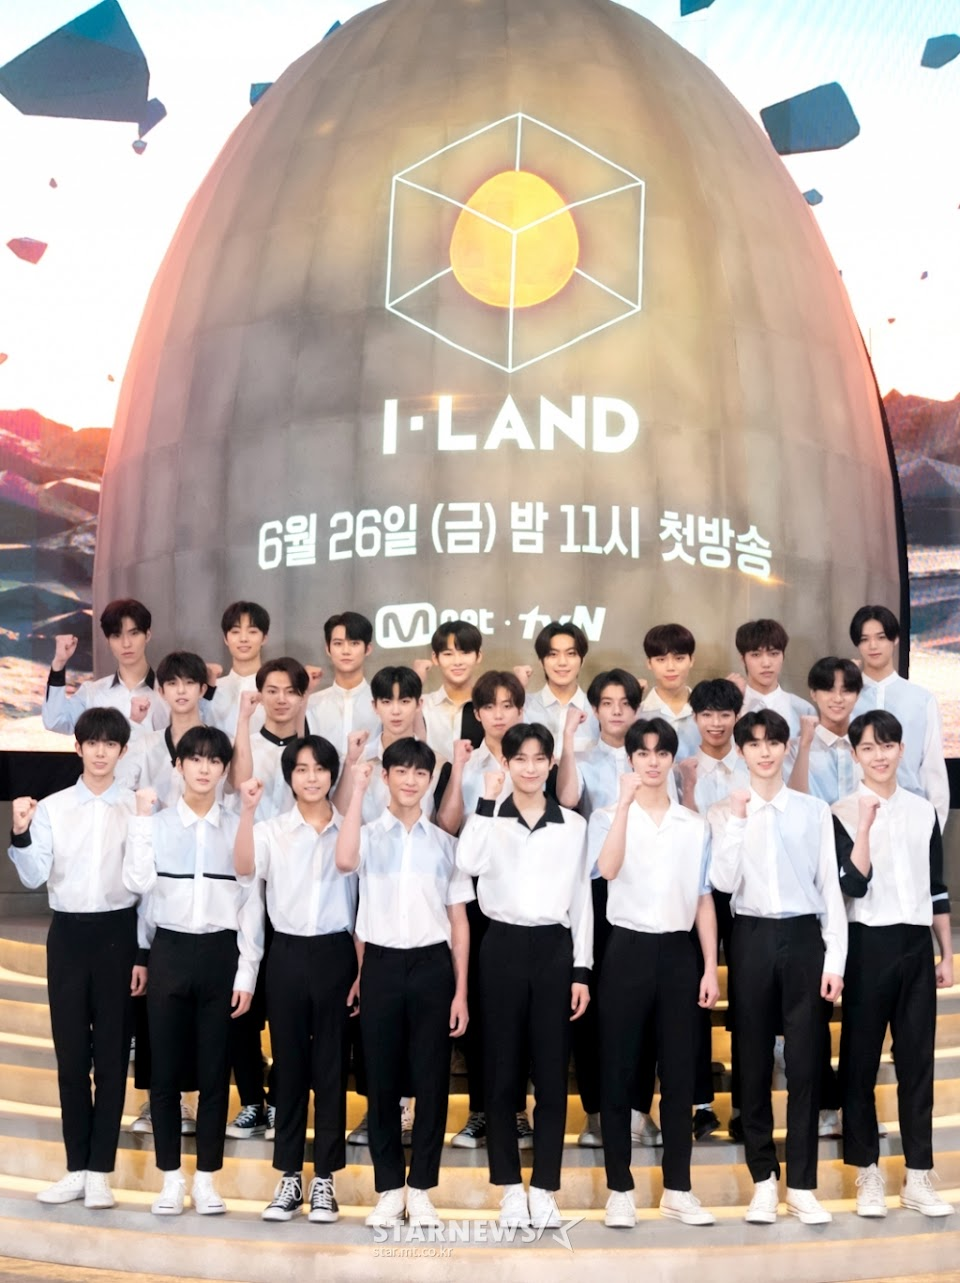 iland members bighit 1